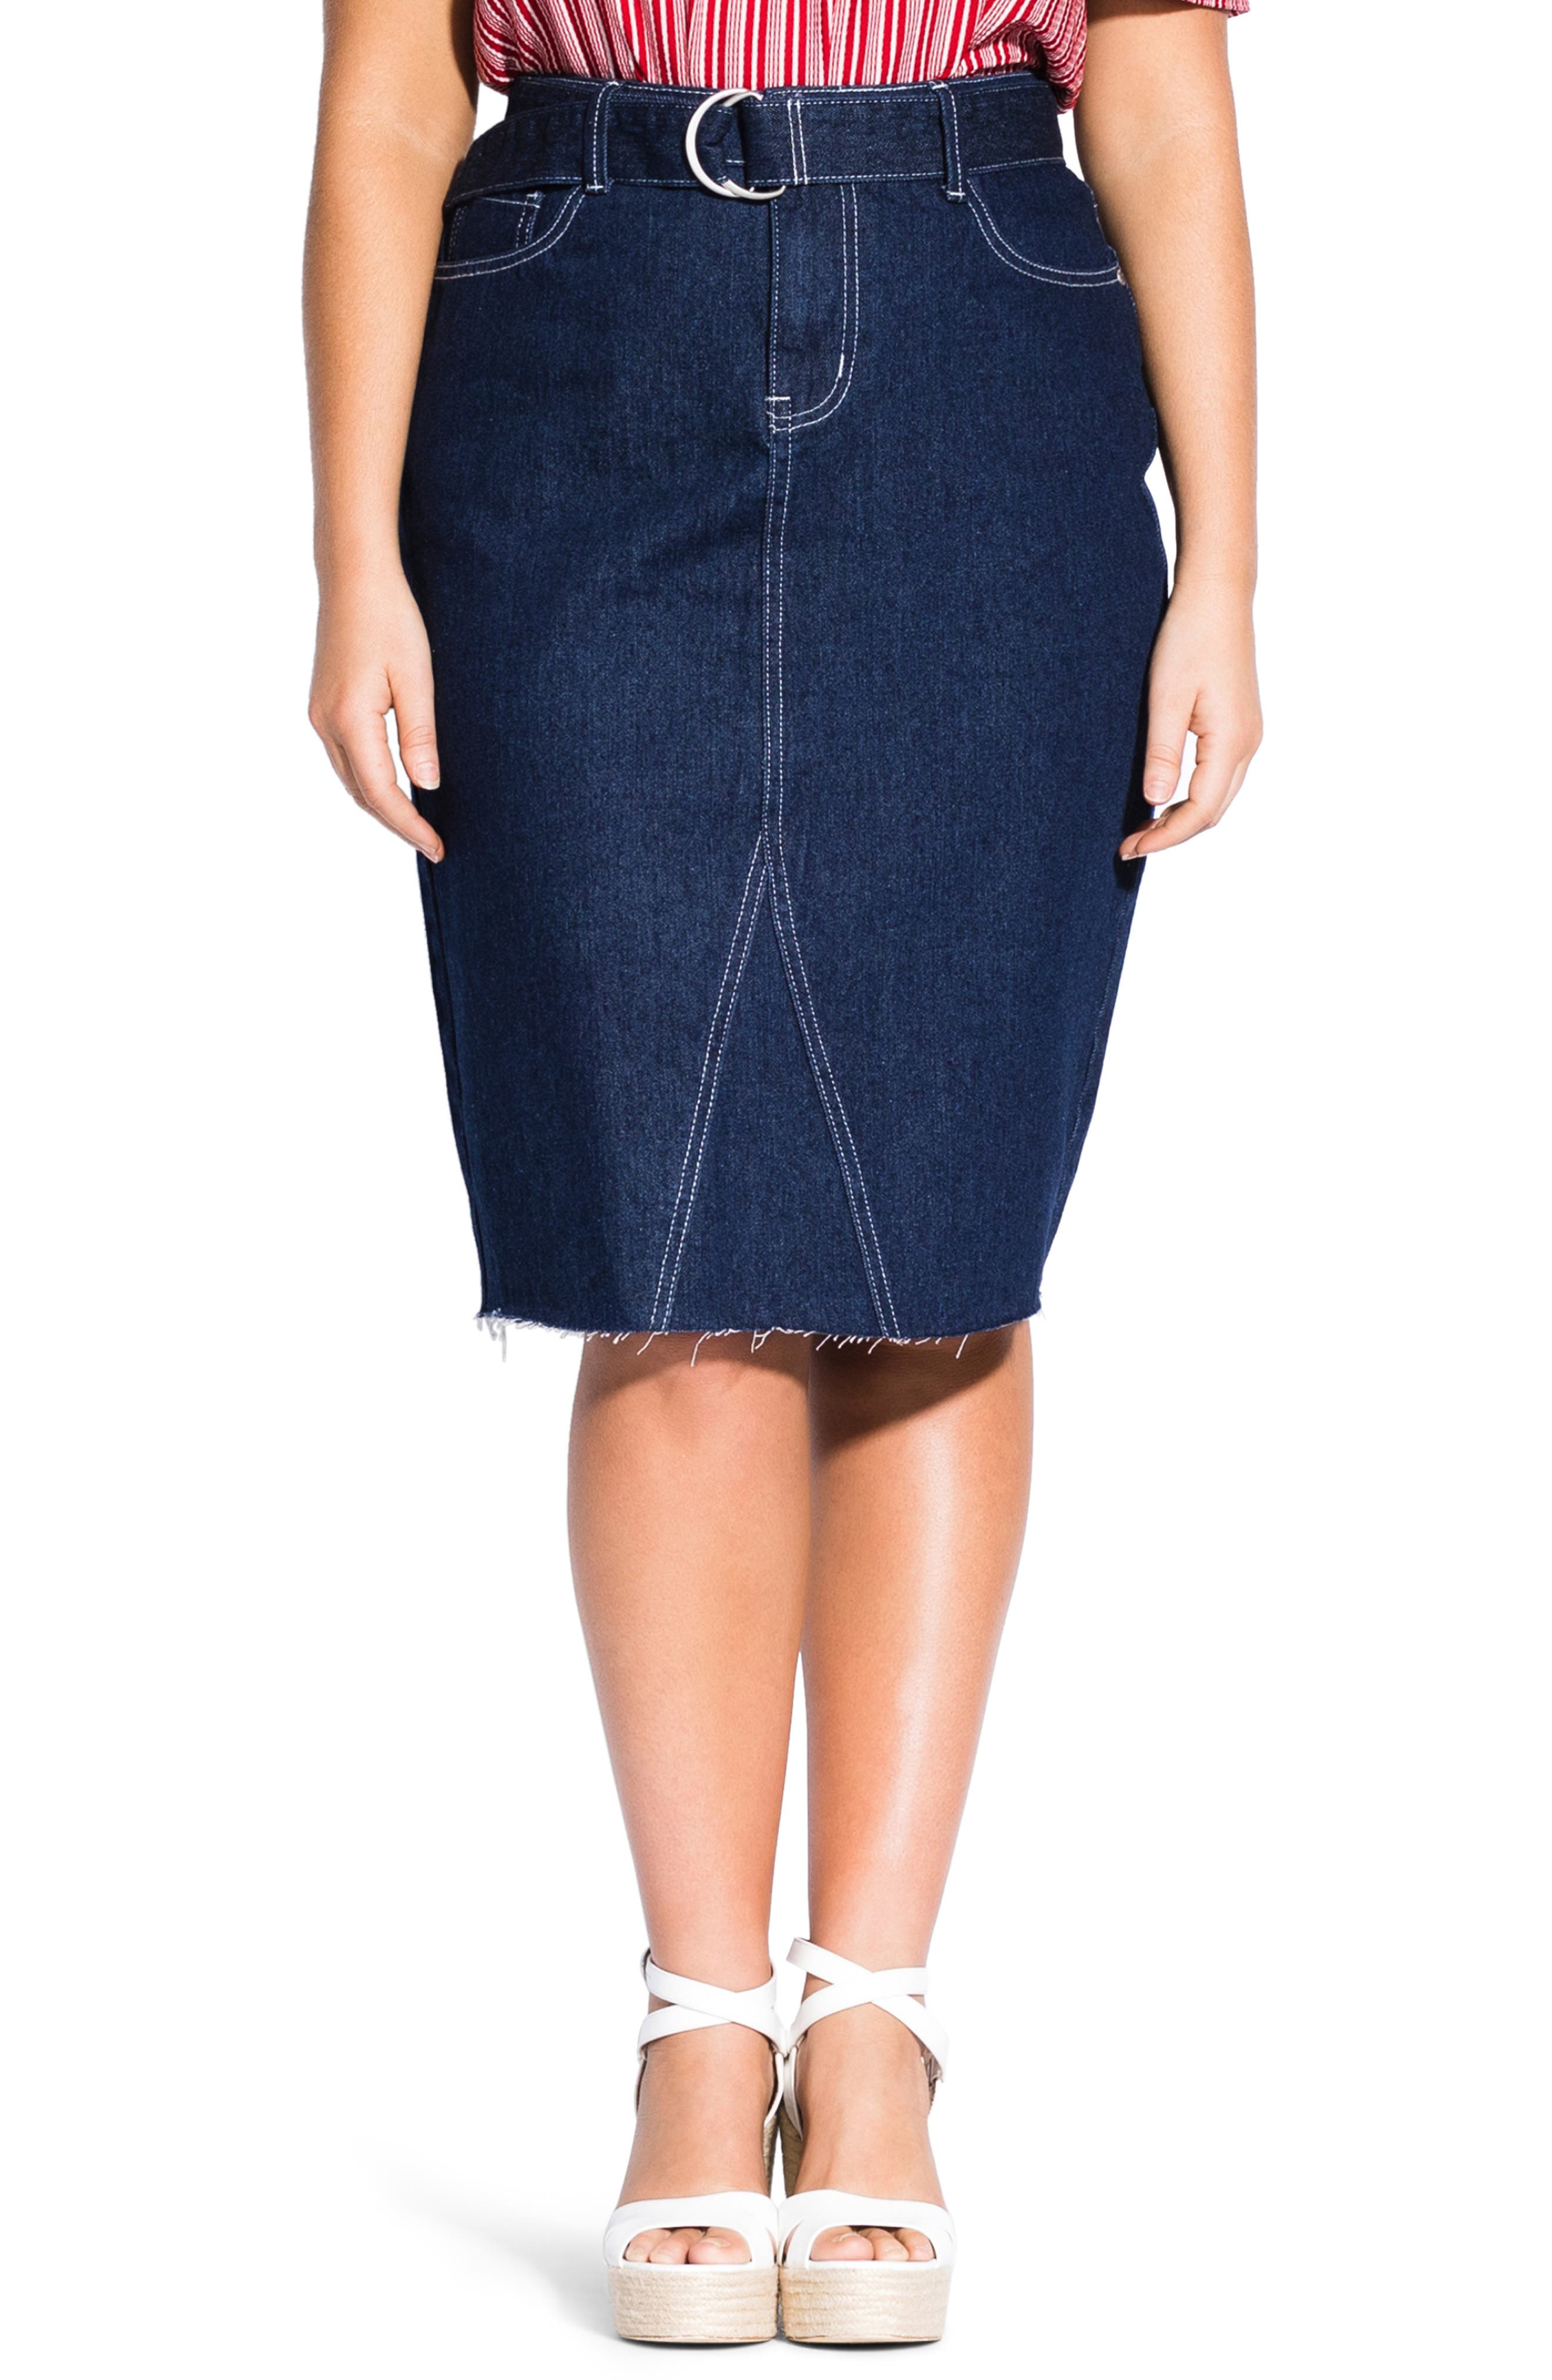 The Limited Womens Royal Blue Pencil Skirt Size 2 Skirts